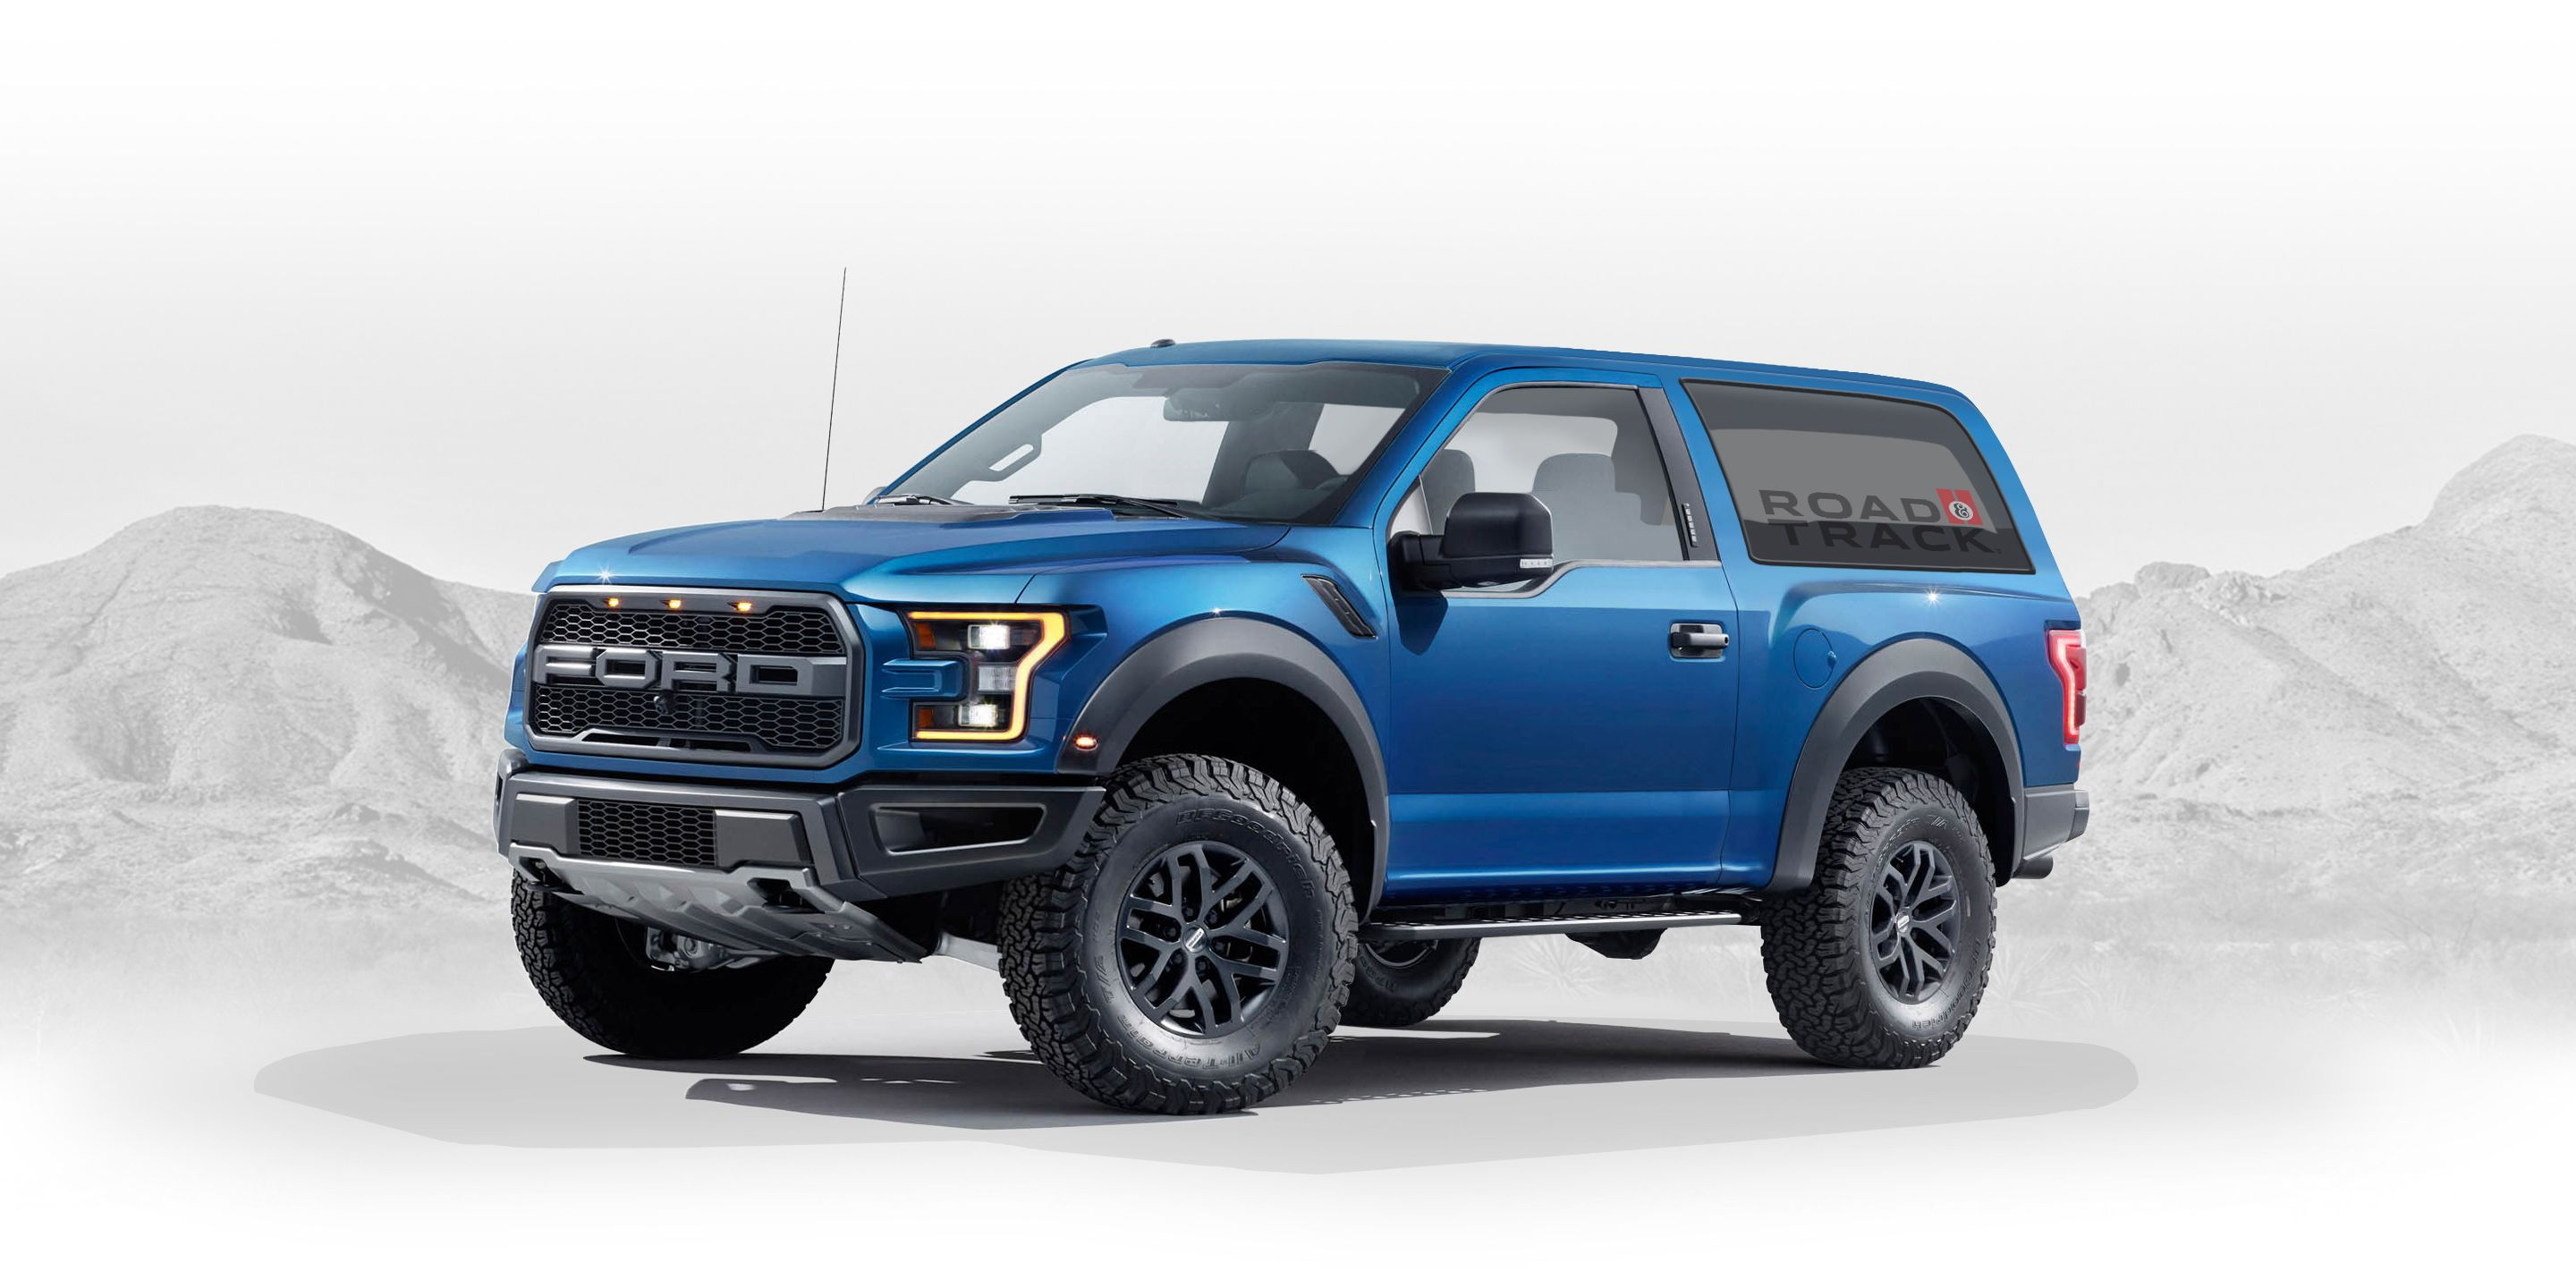 2020 ford bronco designed by fan graphic artist creates ford raptor based bronco designs